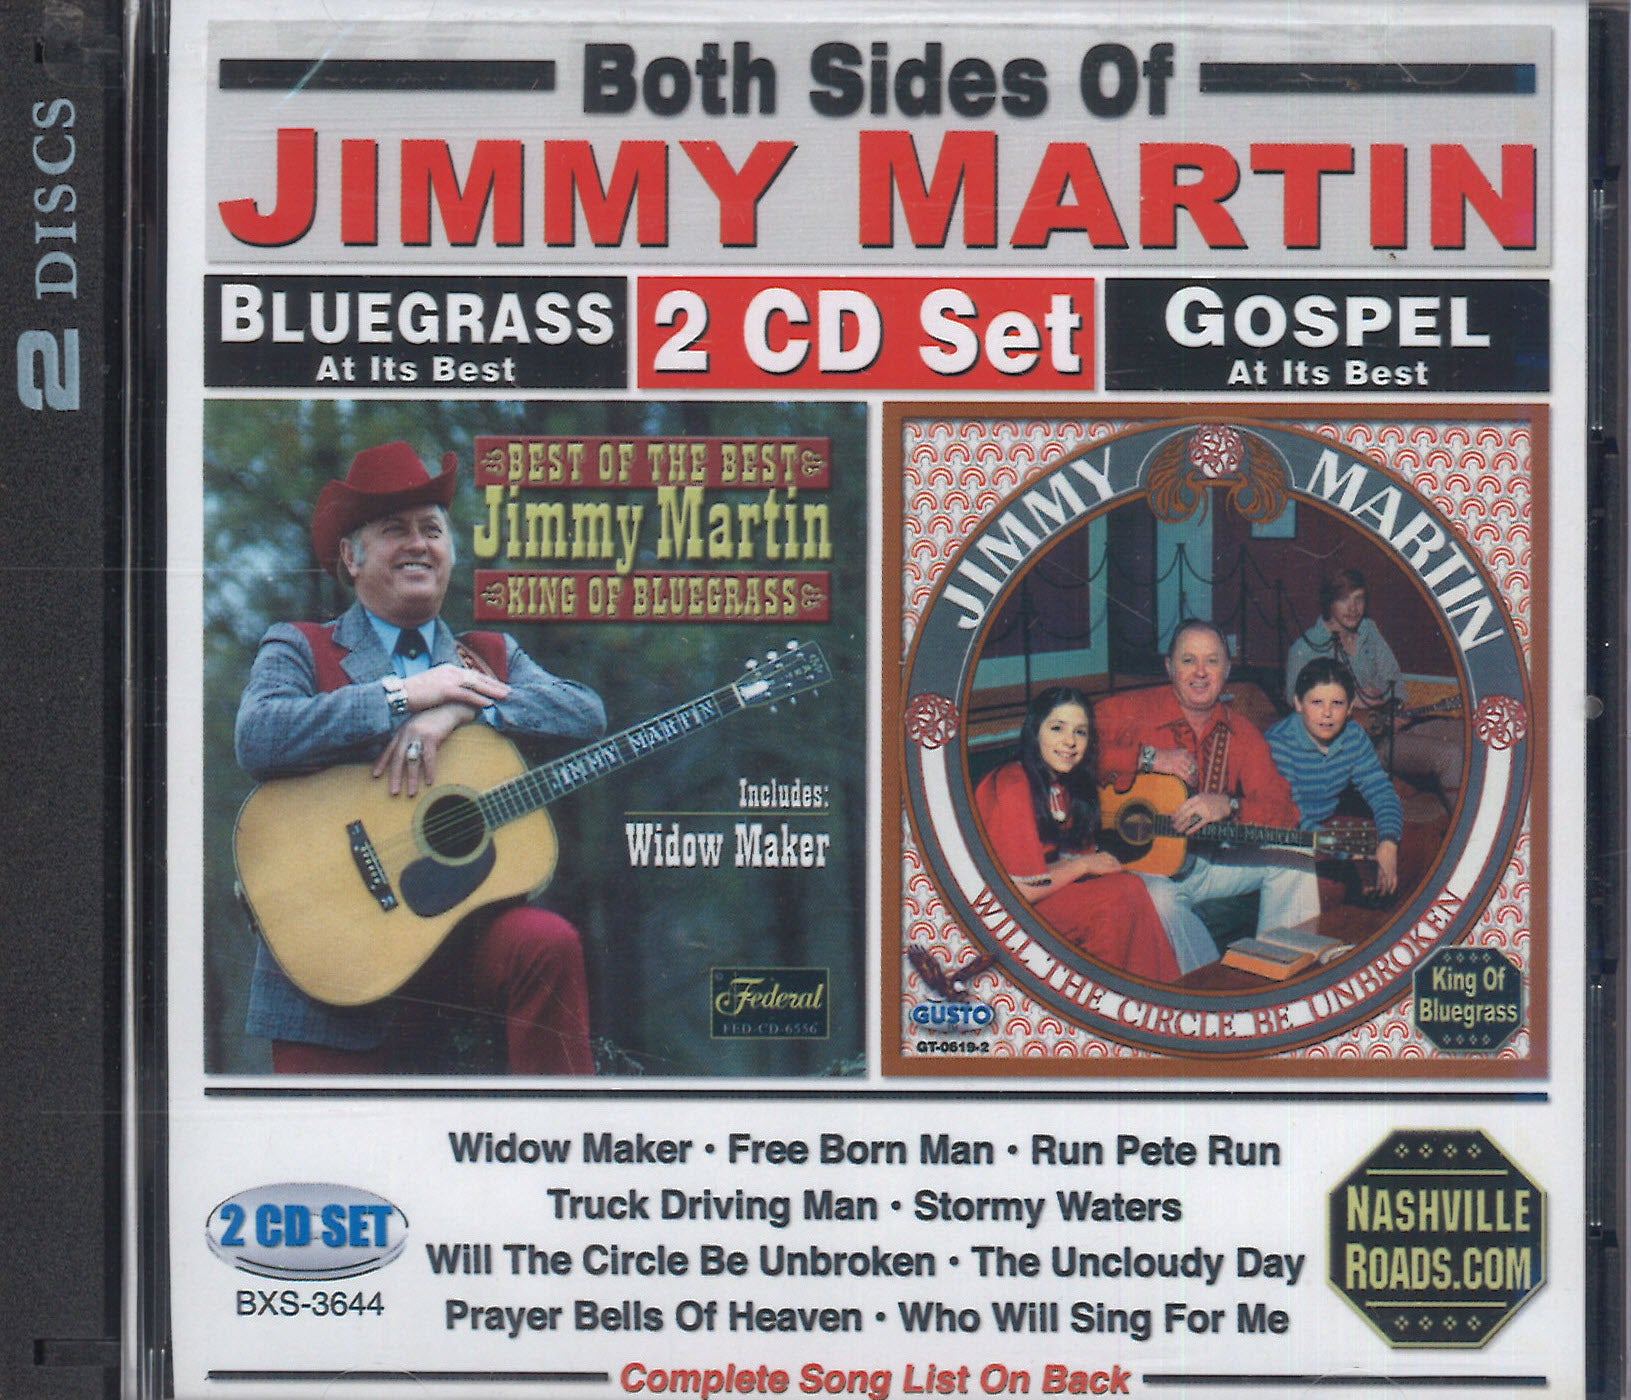 Both Sides Of Jimmy Martin: 2 CD Set